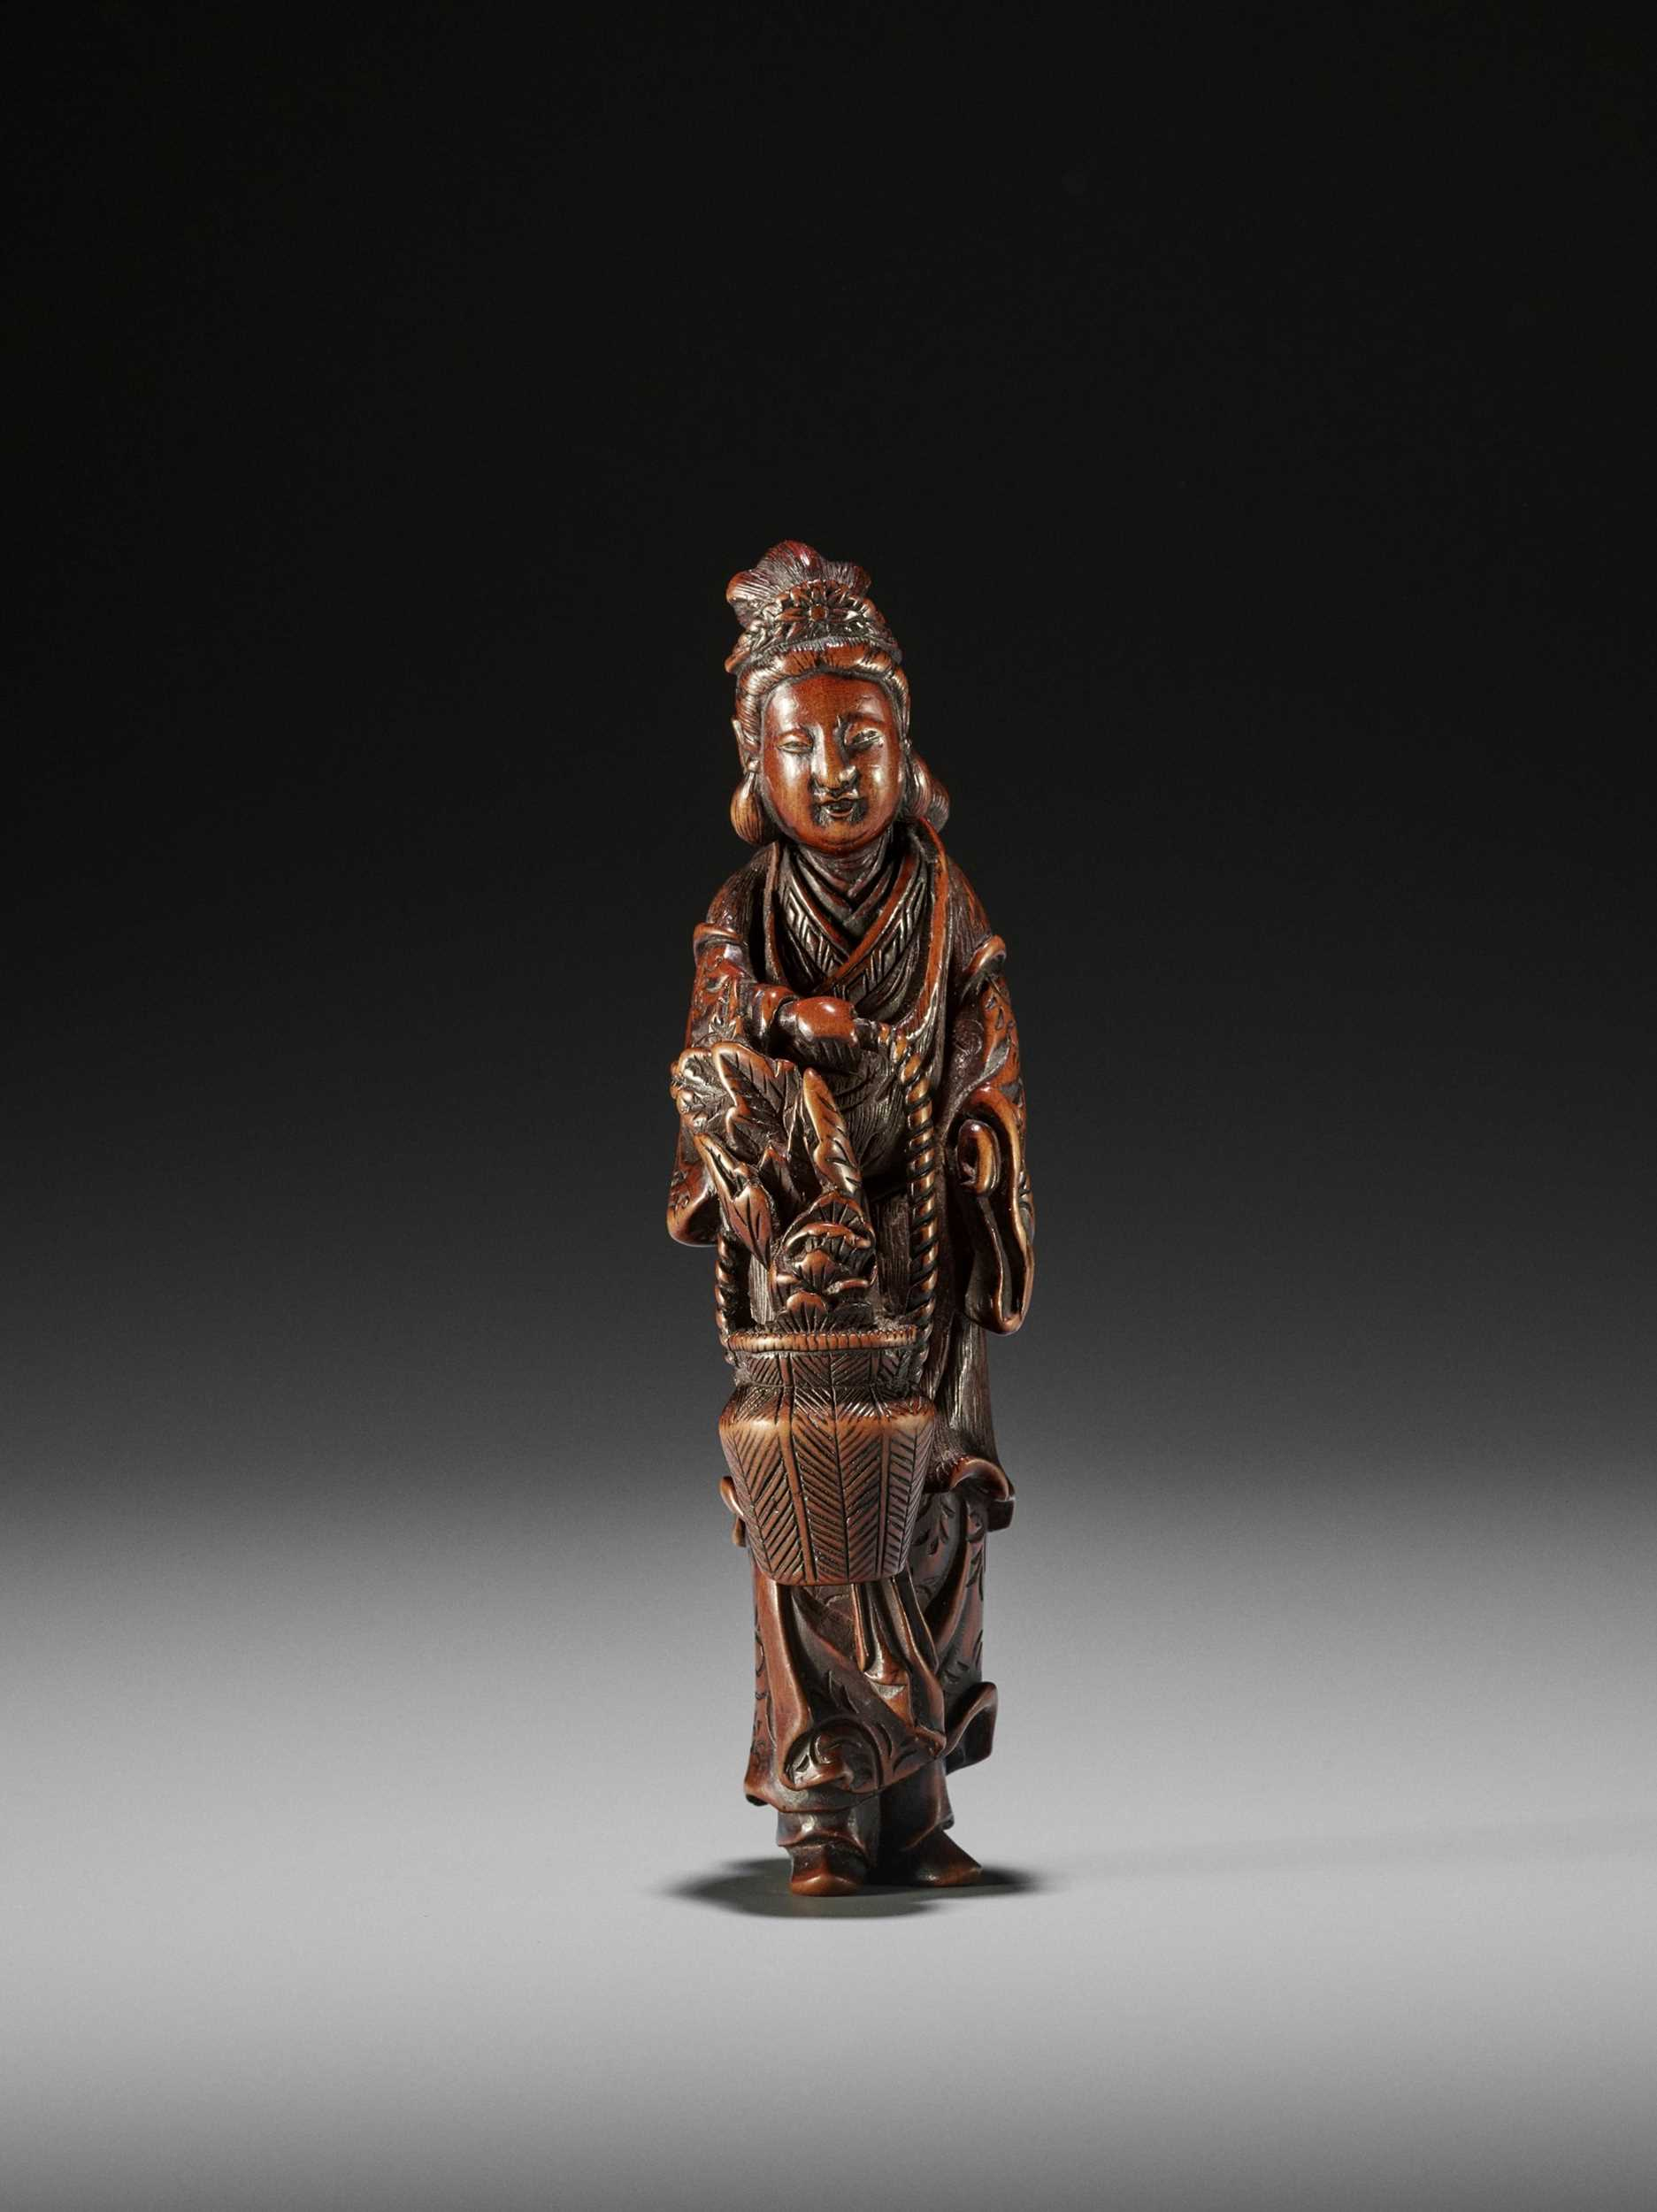 Lot 173 - HASEGAWA IKKO: A TALL AND FINE WOOD NETSUKE OF SEIOBO